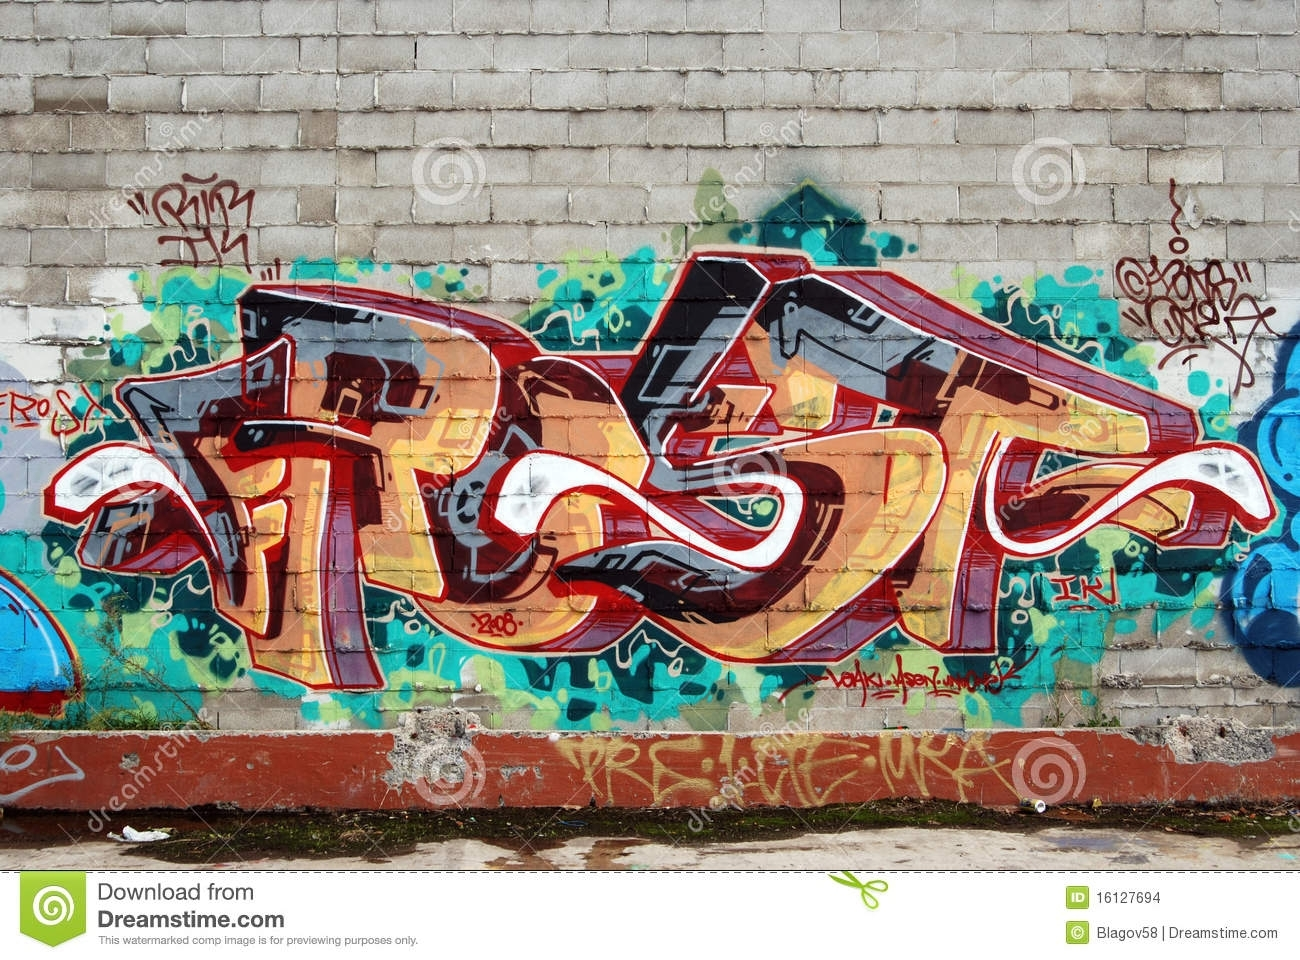 A Wall Vandalized With Street Graffiti Art Stock Photo – Image Of Pertaining To Most Current Graffiti Wall Art (View 1 of 20)